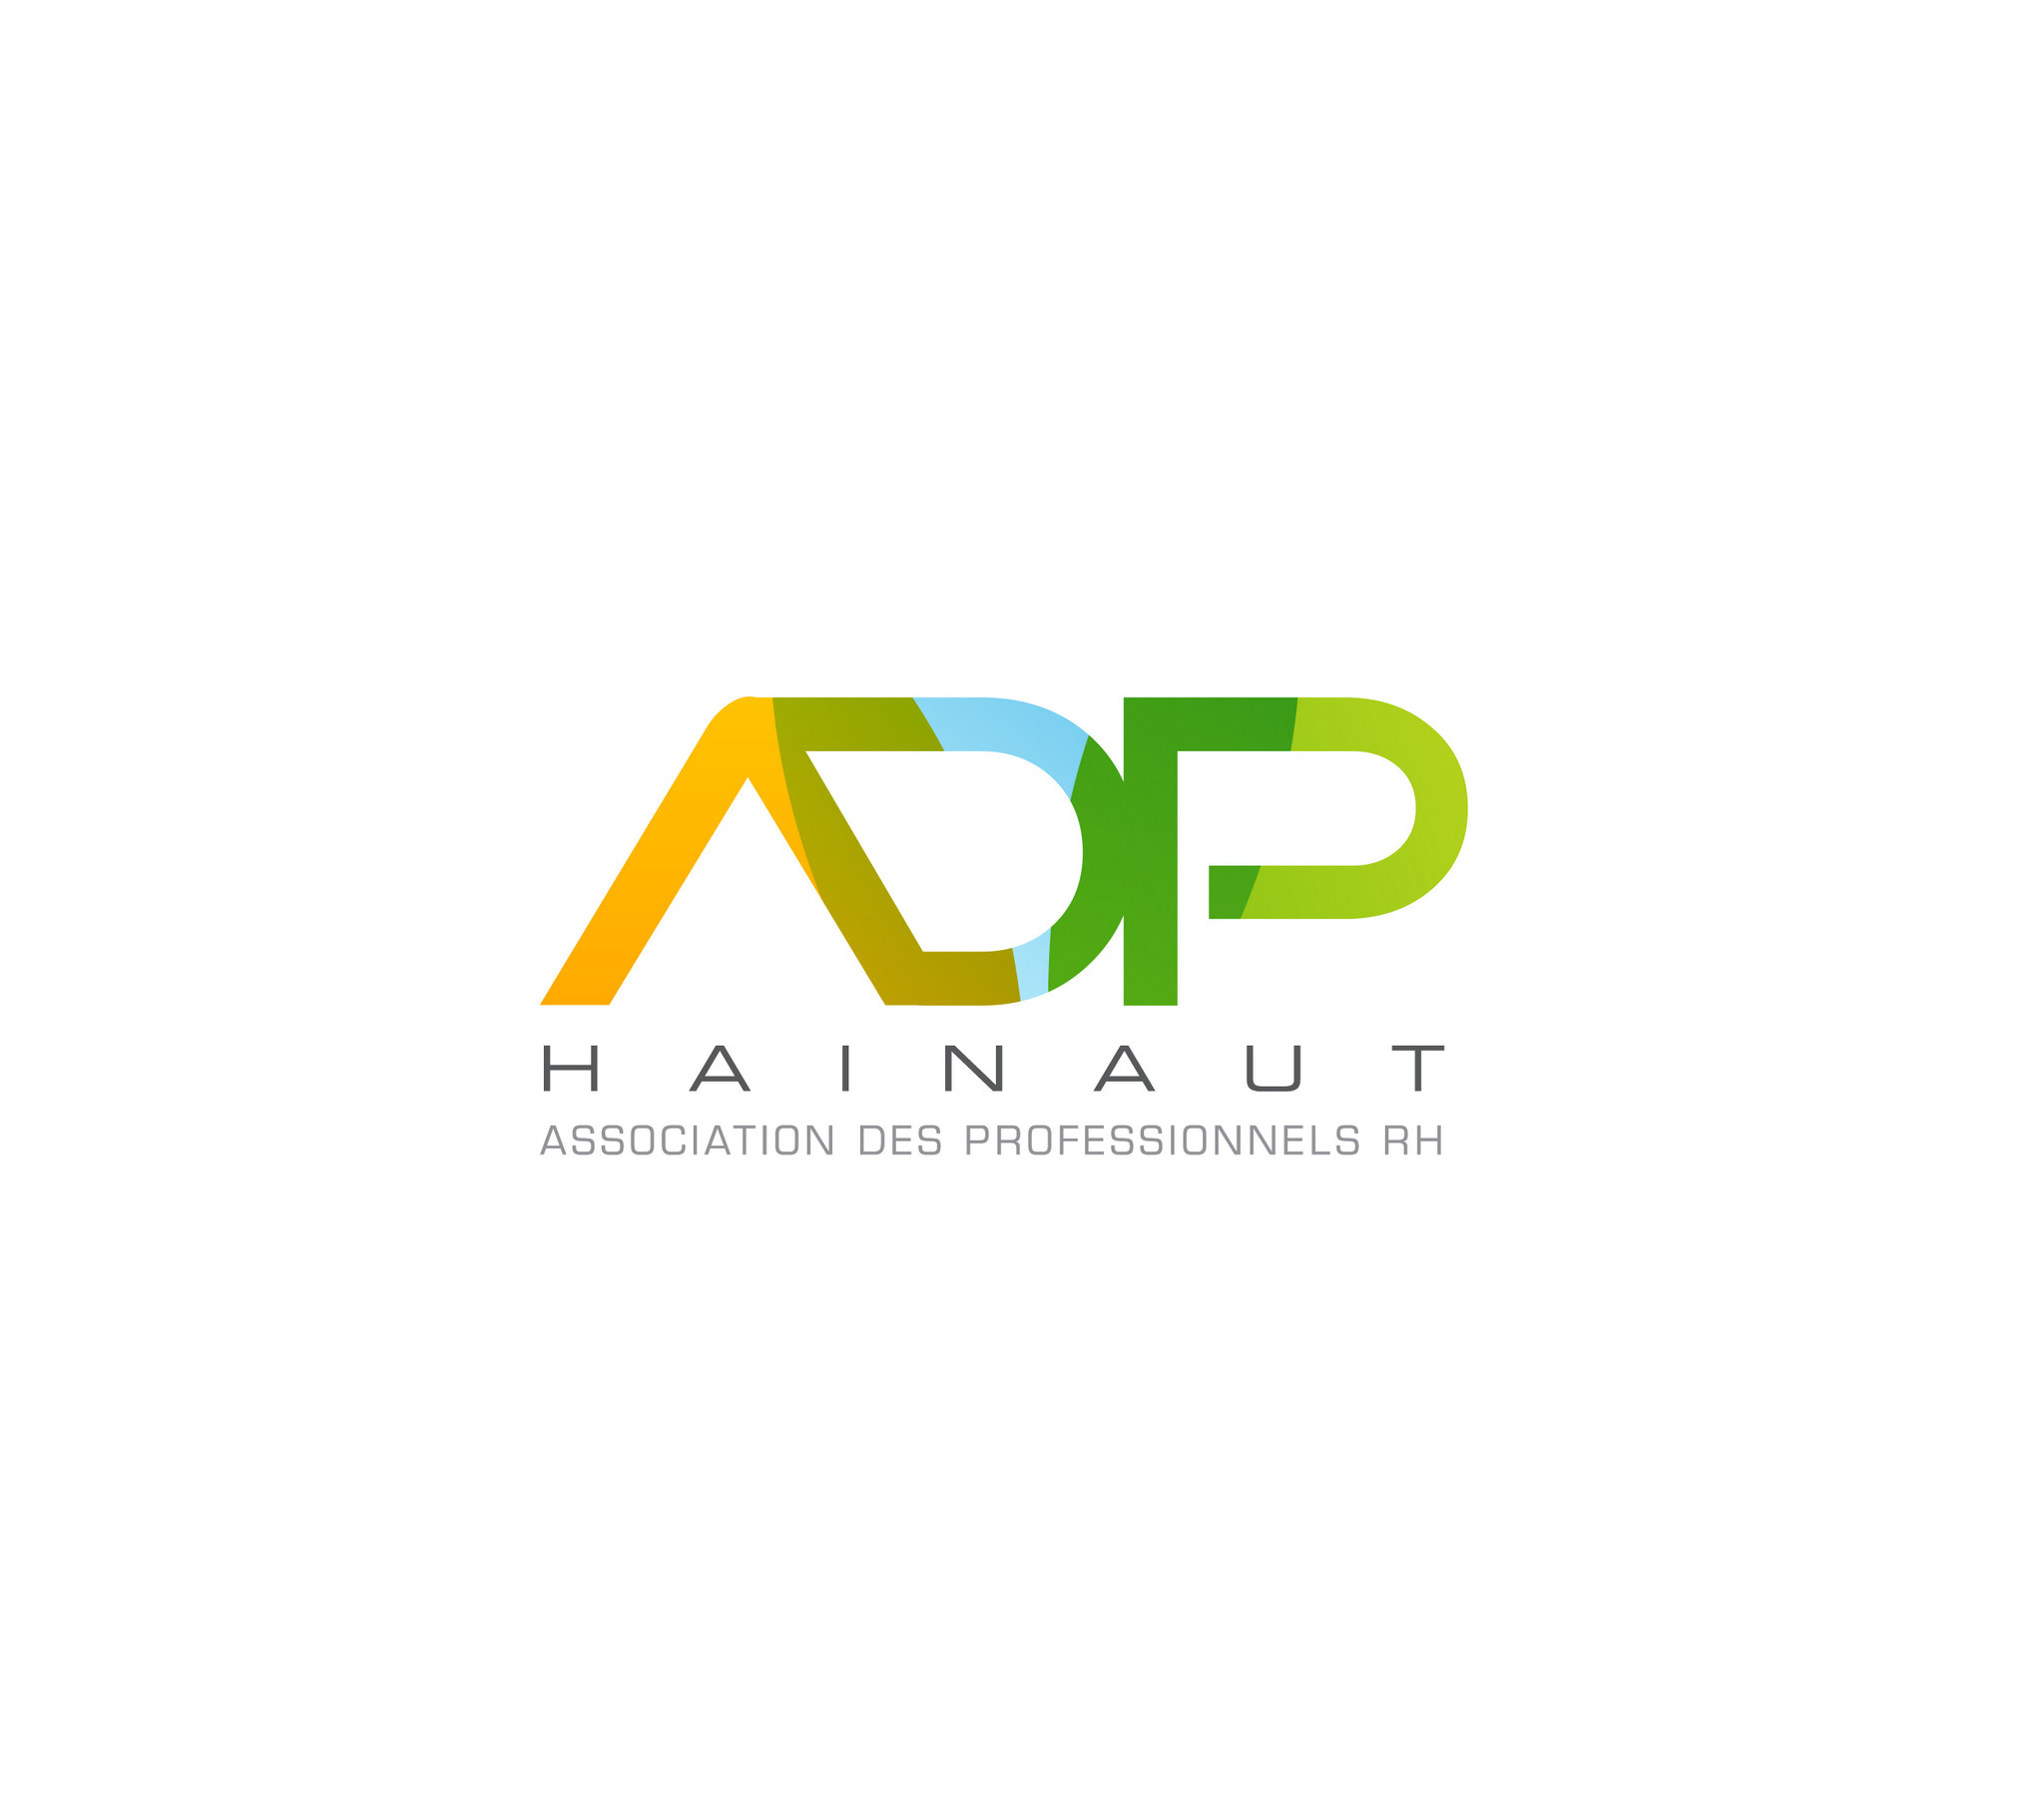 A stylish logo for an association of human resources leaders